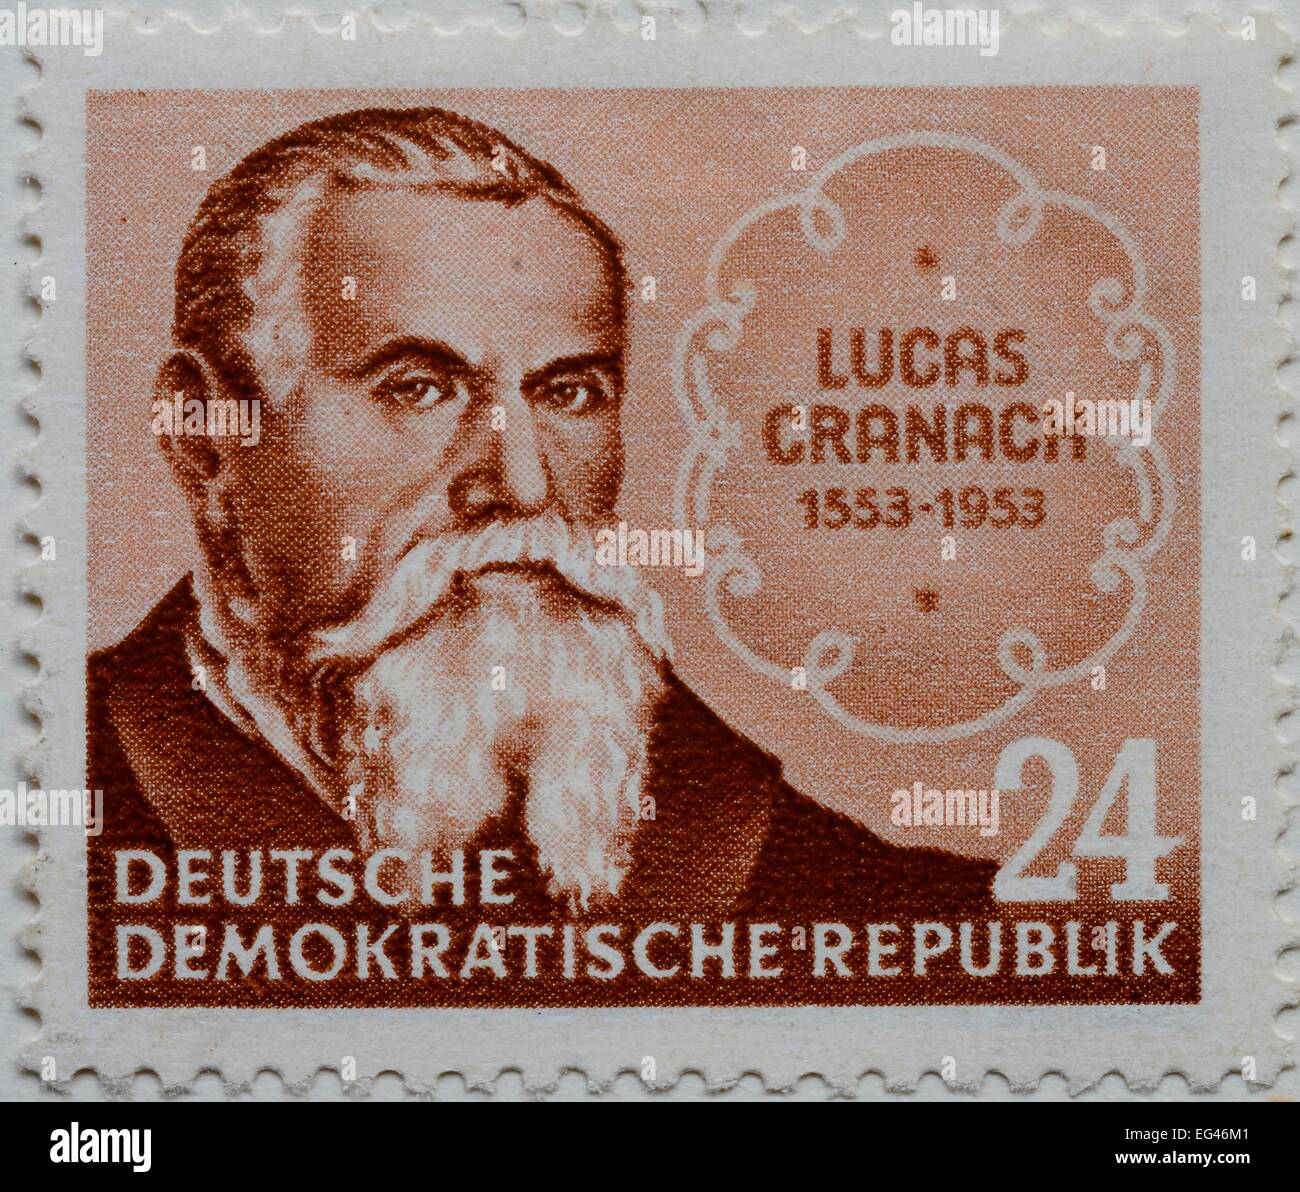 RMucas Cranach the ERMder, a German Renaissance painter and printmaker, portrait on a stamp, GDR, 1953 - Stock Image